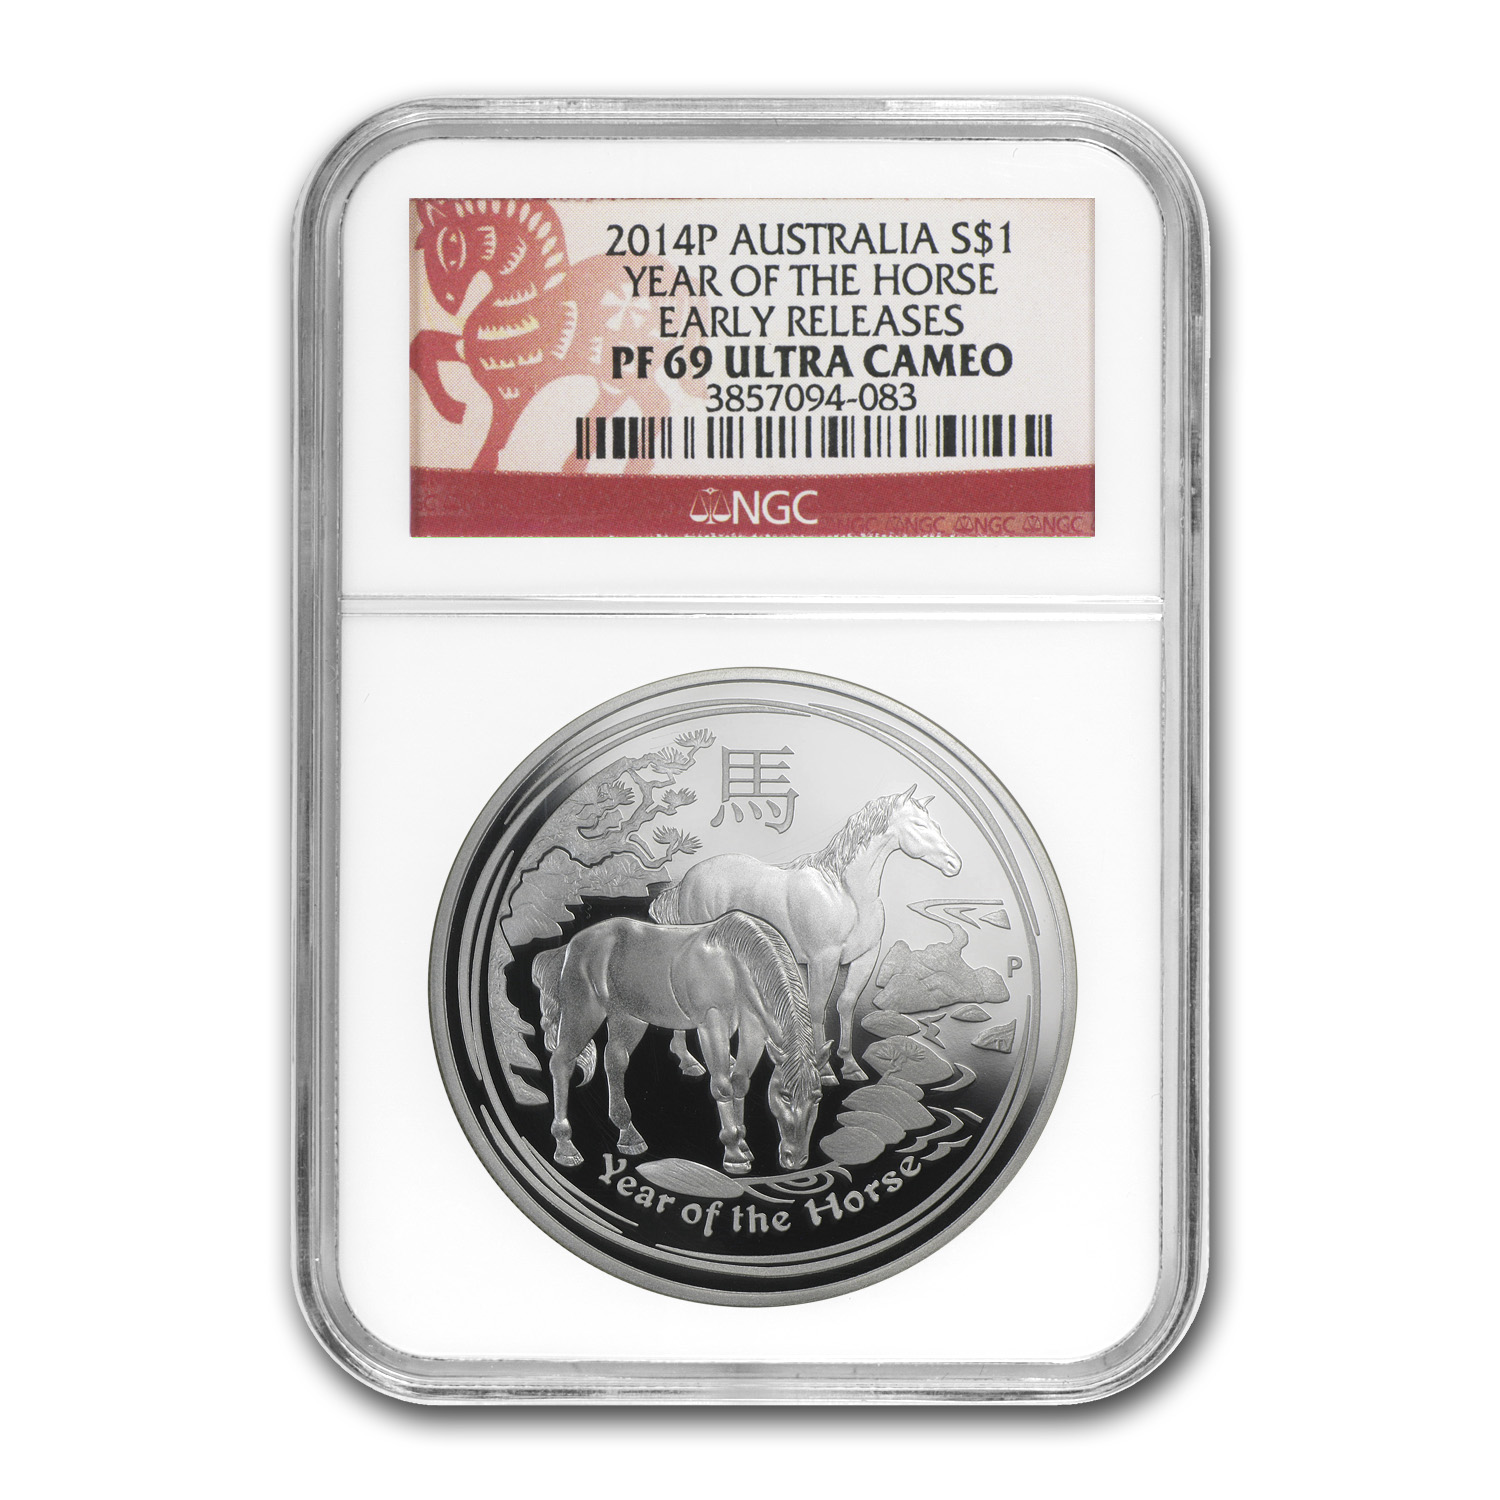 2014 Australia 1 oz Silver Year of the Horse PF-69 NGC